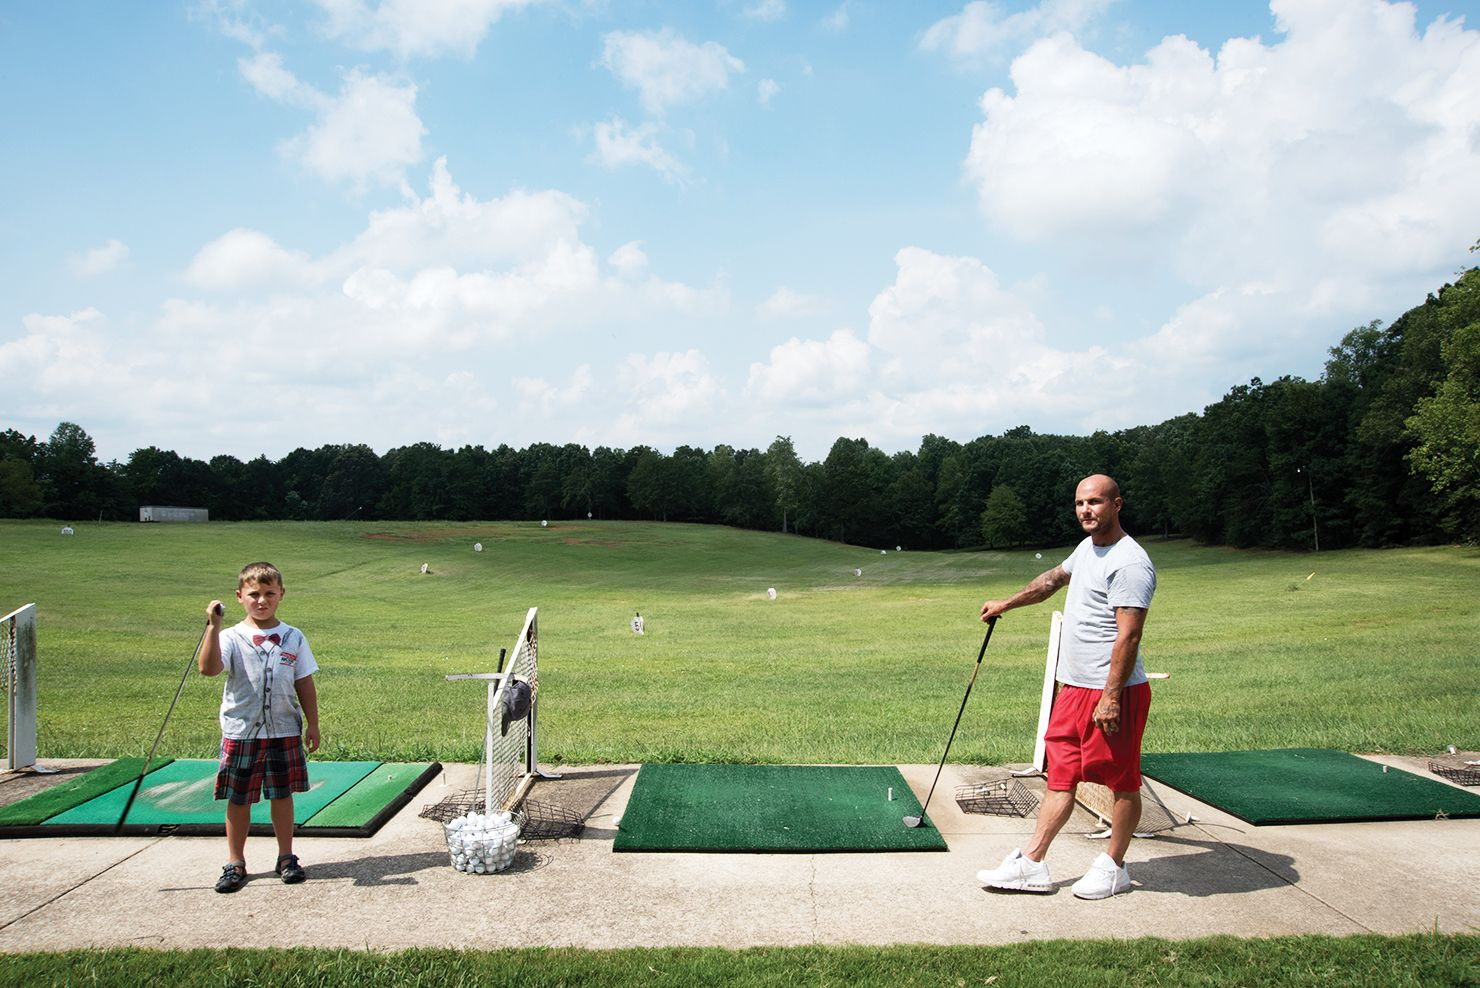 Wes Robida and his son Caden at the driving range on a Sunday afternoon. The family recently relocated from Denver to Greenville, attracted by the strong economy and cost of living. (1 of 10)